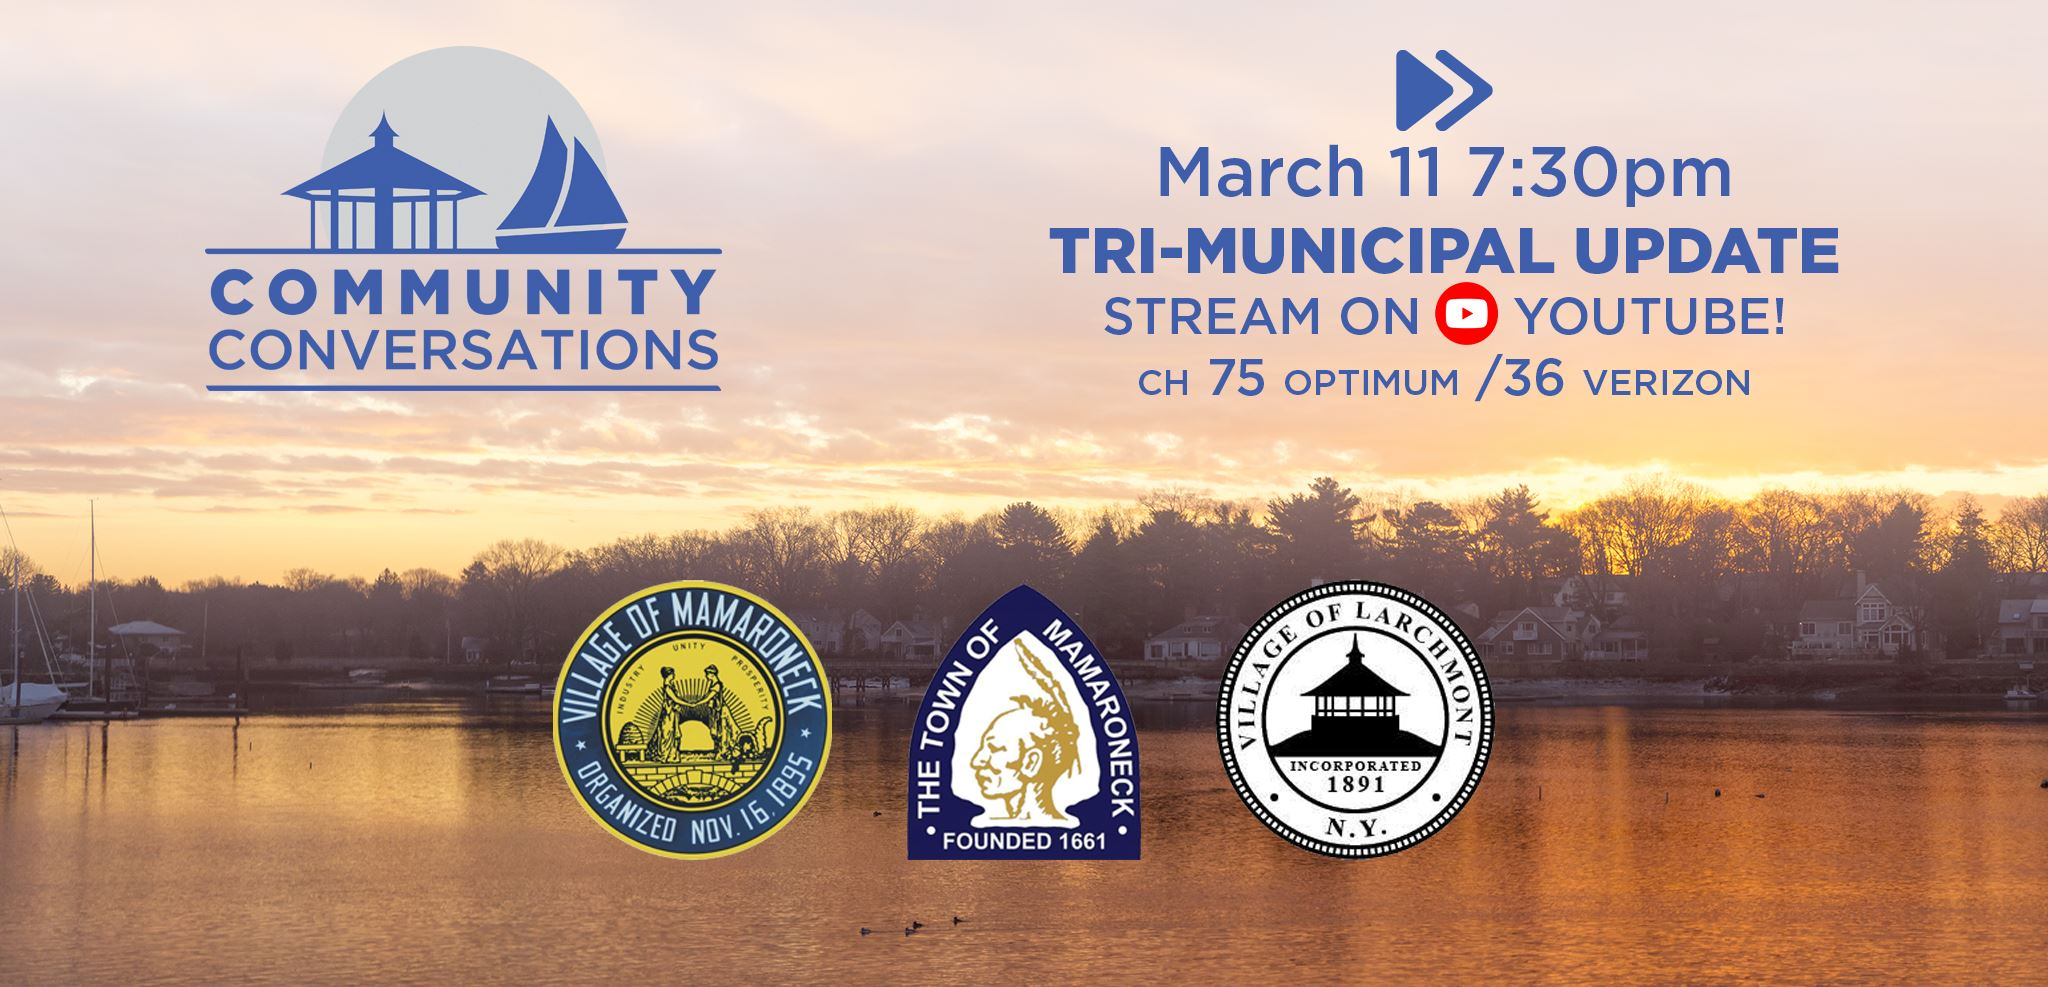 Community Conversations Tri-Municipal Update Thursday March 11 on Youtube and LMC Media